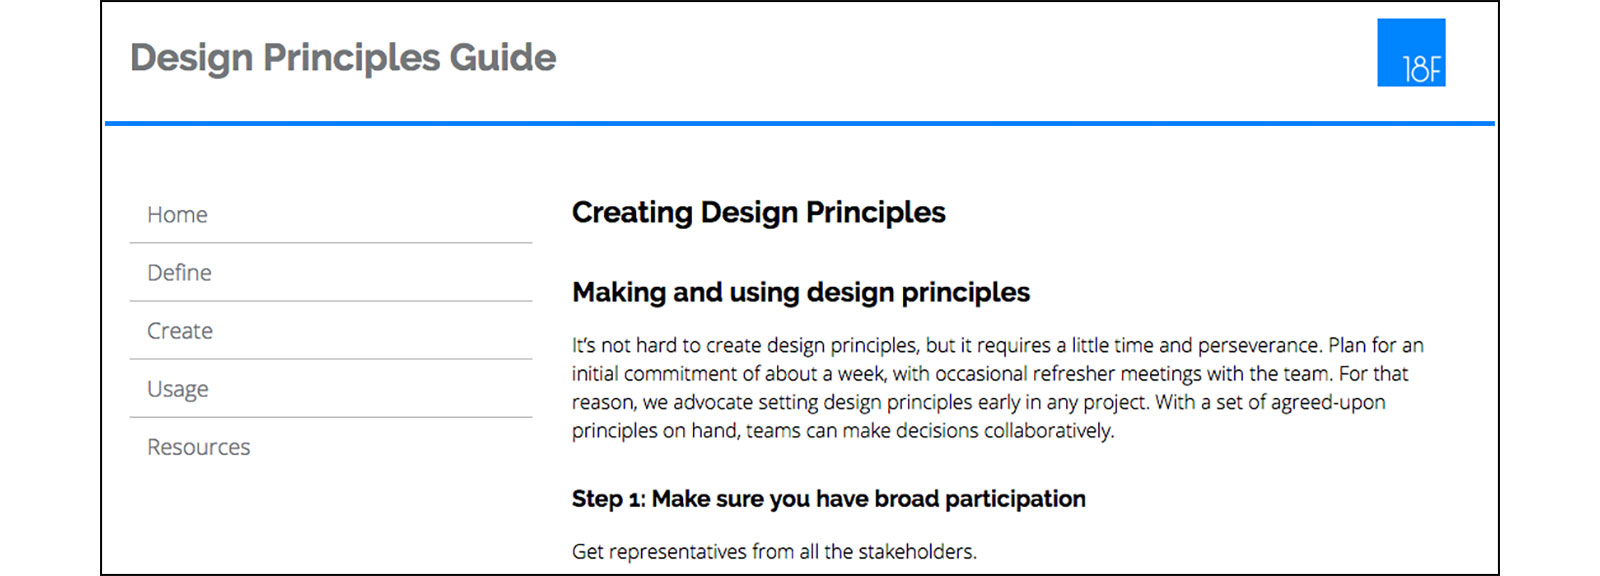 Principles Of Design List : F digital service delivery design